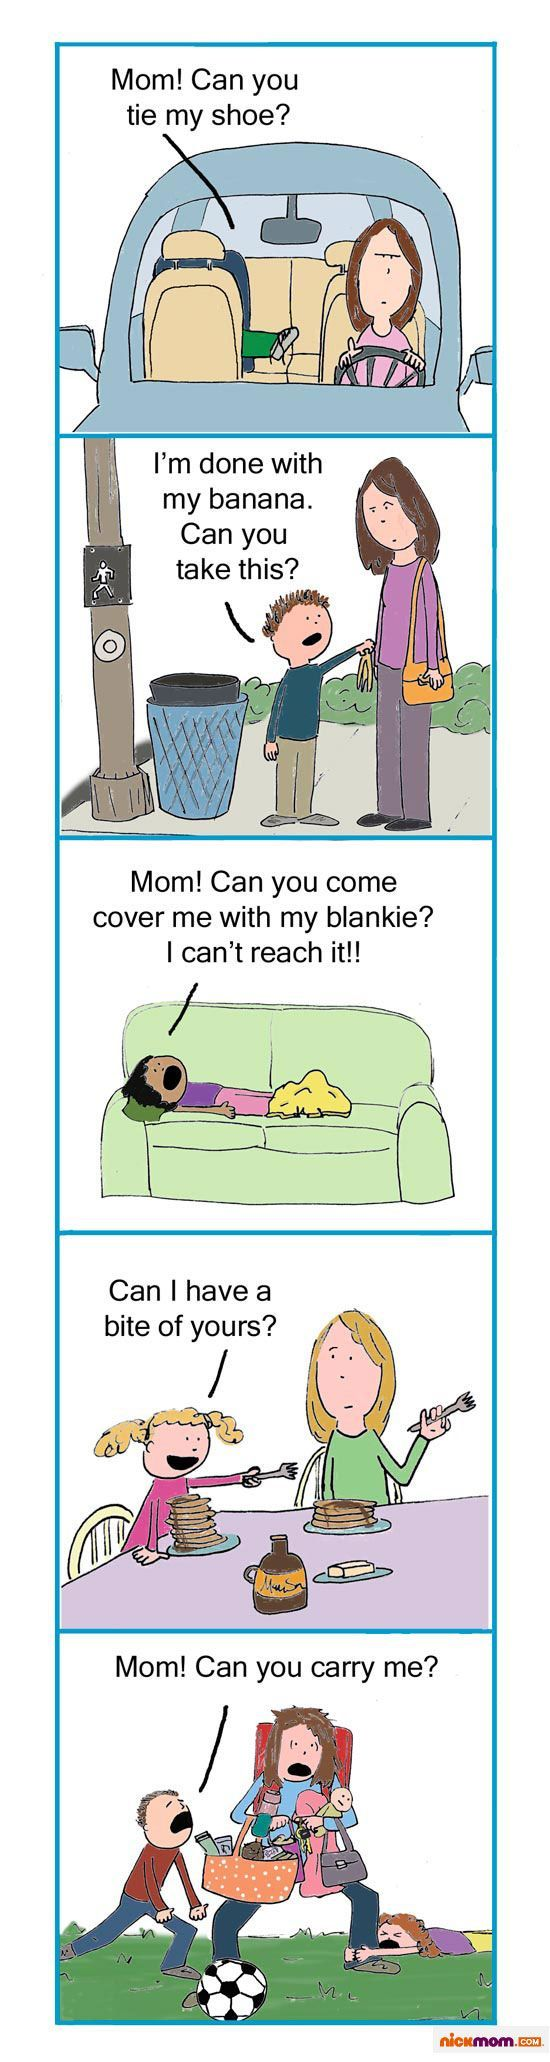 We enjoyed this from @NickMom - we thought you may as well :) -http://www.KidzCentralStation.com #kids #humor #parents